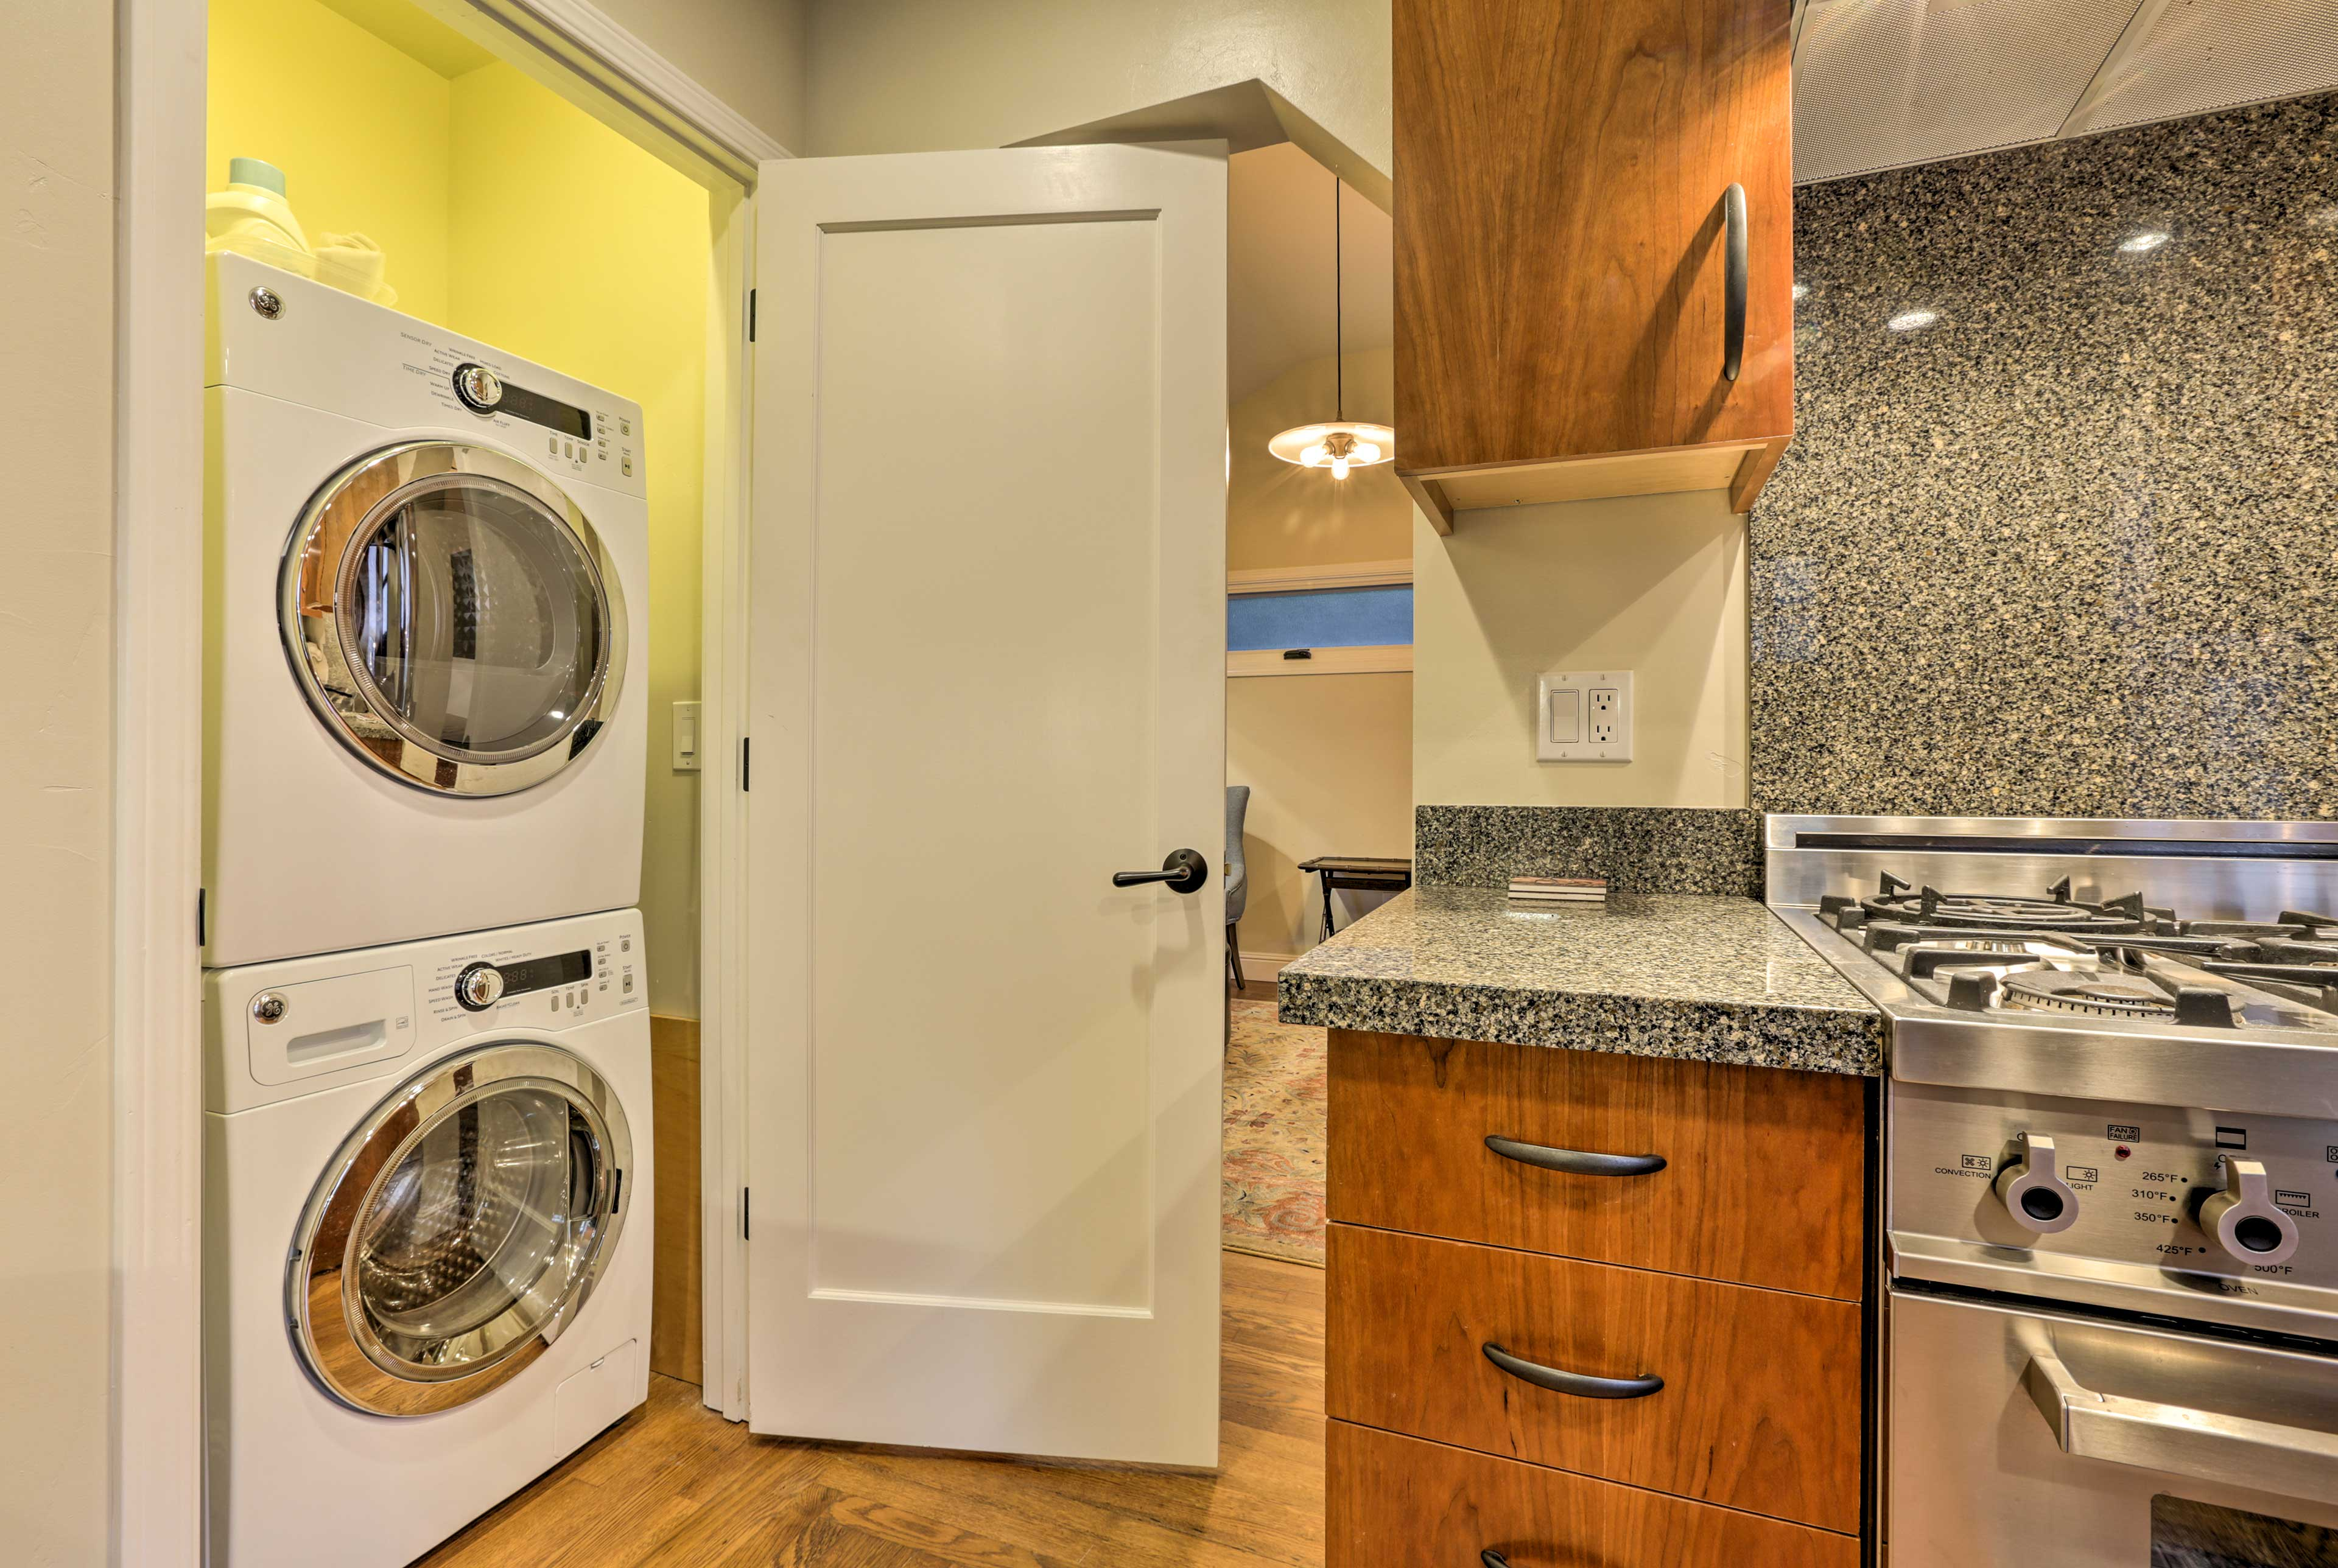 You'll feel right at home with the addition of in-unit laundry machines.